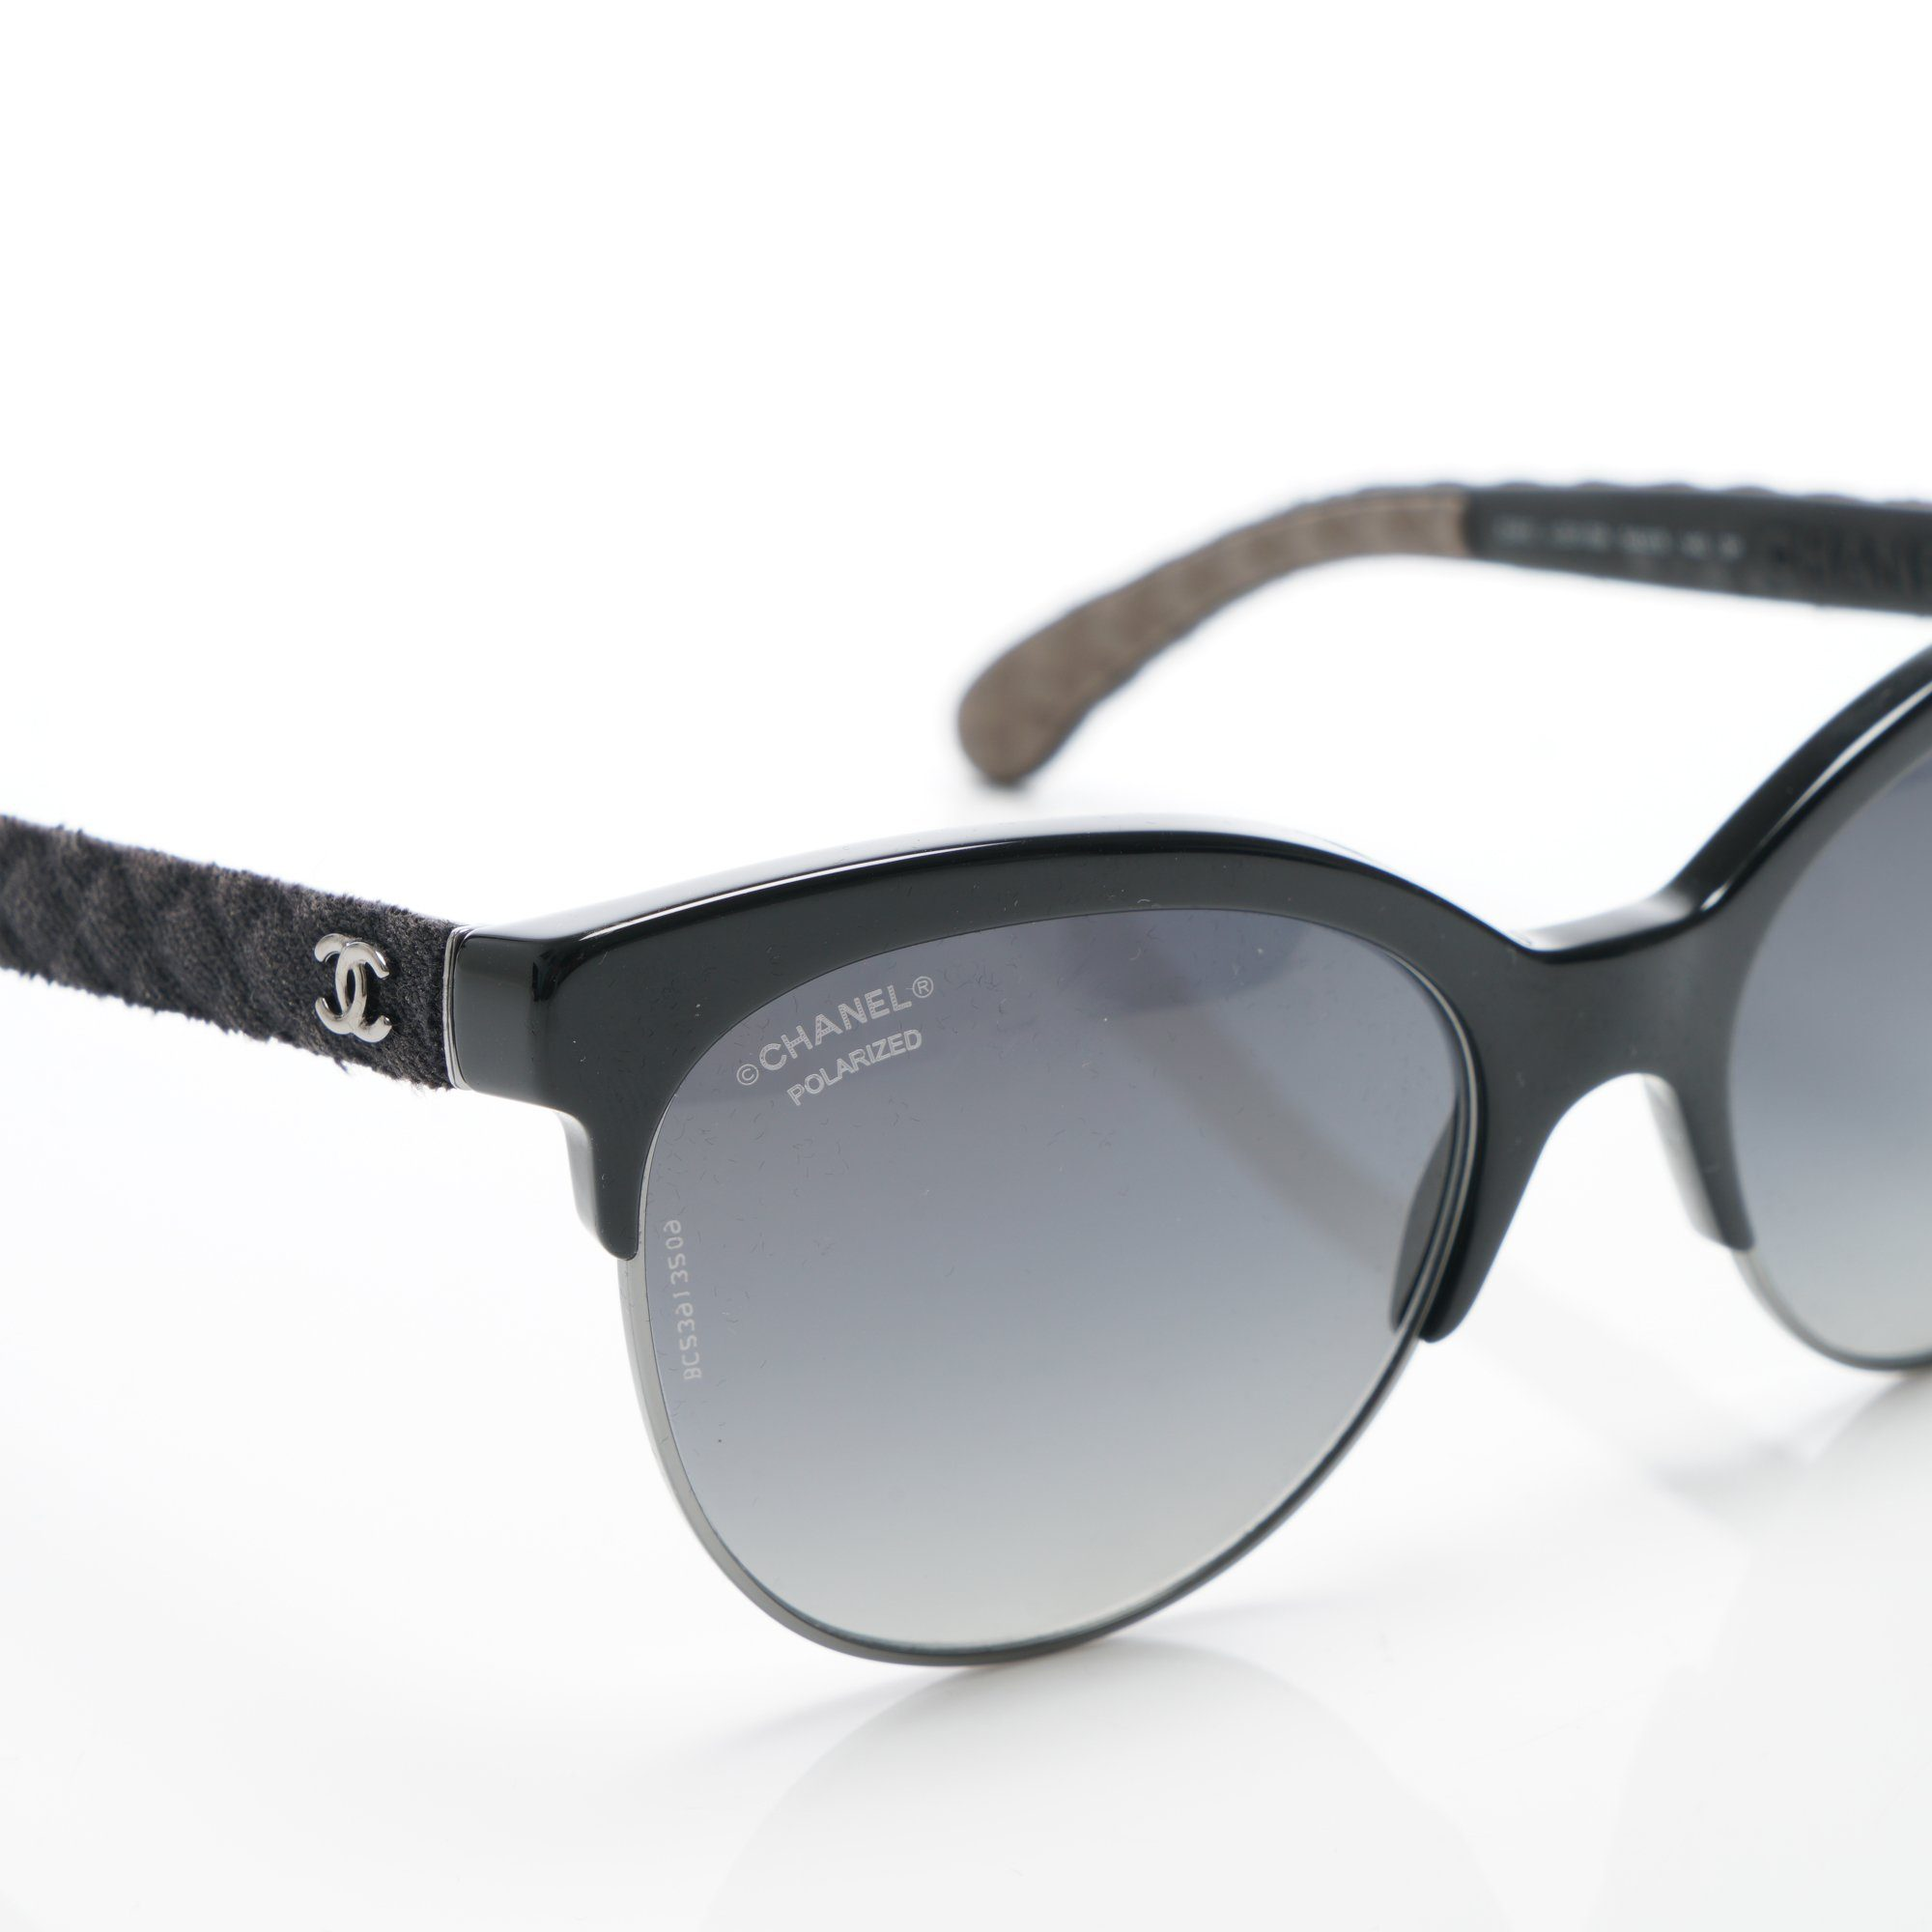 Chanel Sunglasses With Denim Arms